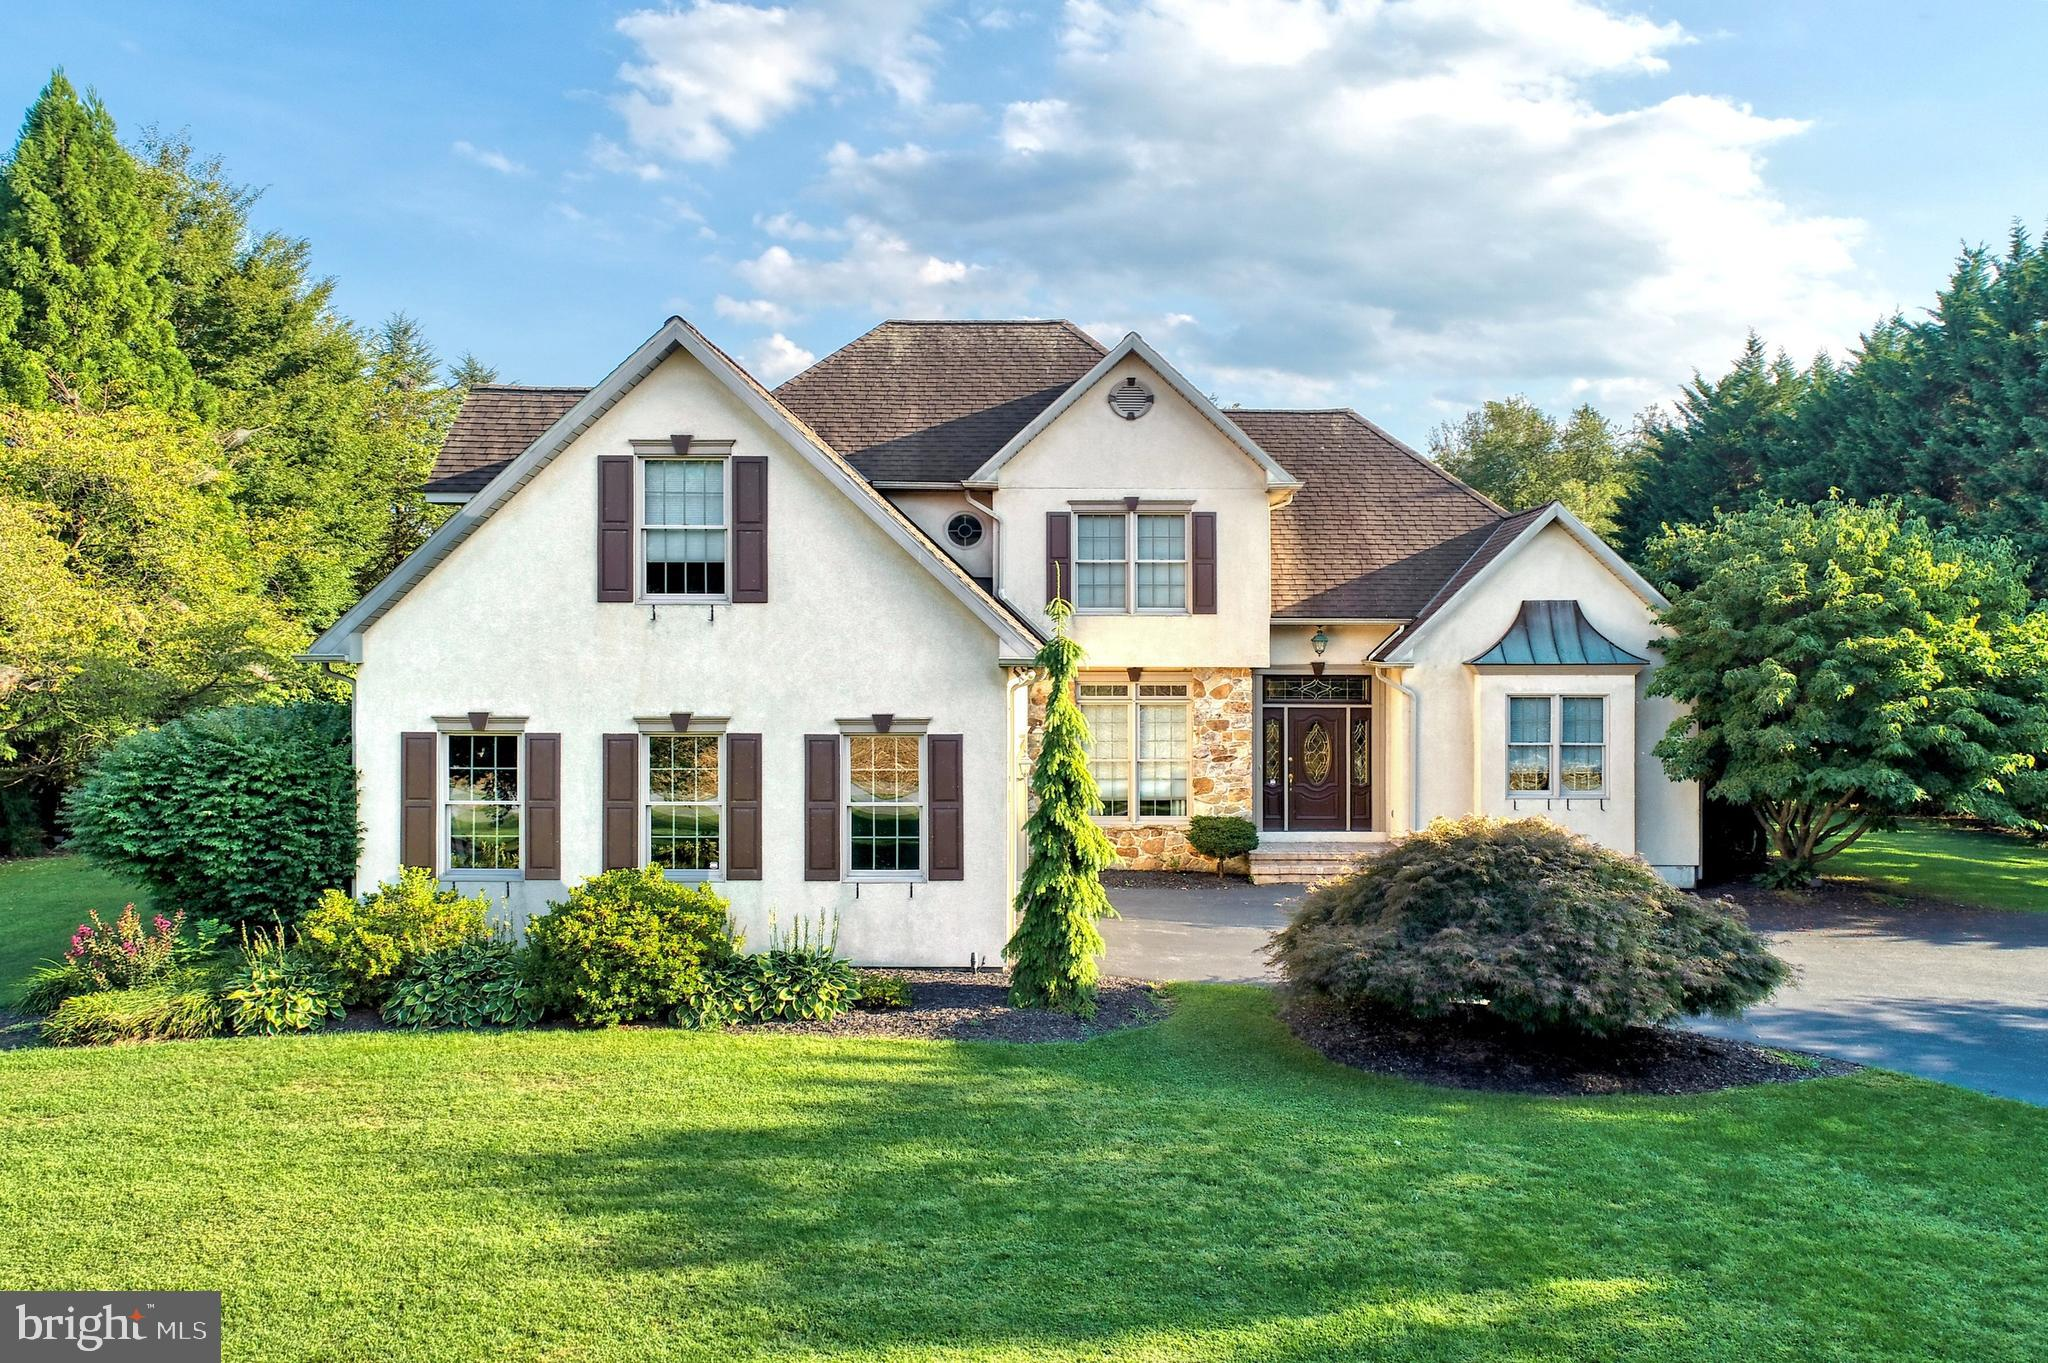 7348 PIGEON HILL ROAD, SPRING GROVE, PA 17362